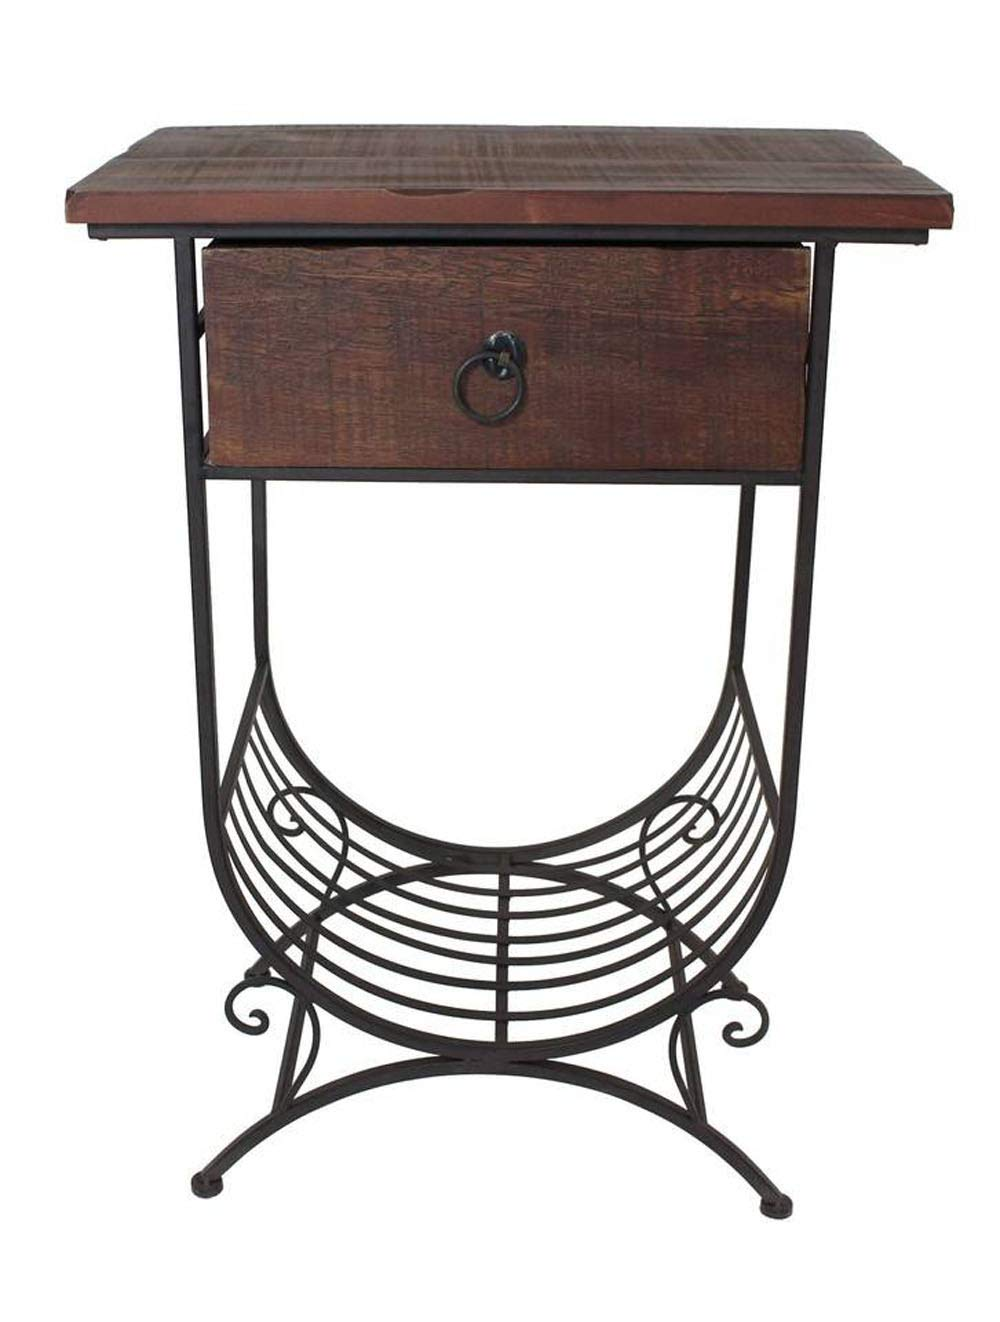 PierSurplus Accent Side Table w Wooden Top Drawer and Metal Bottom Magazine Rack Product SKU HD223549